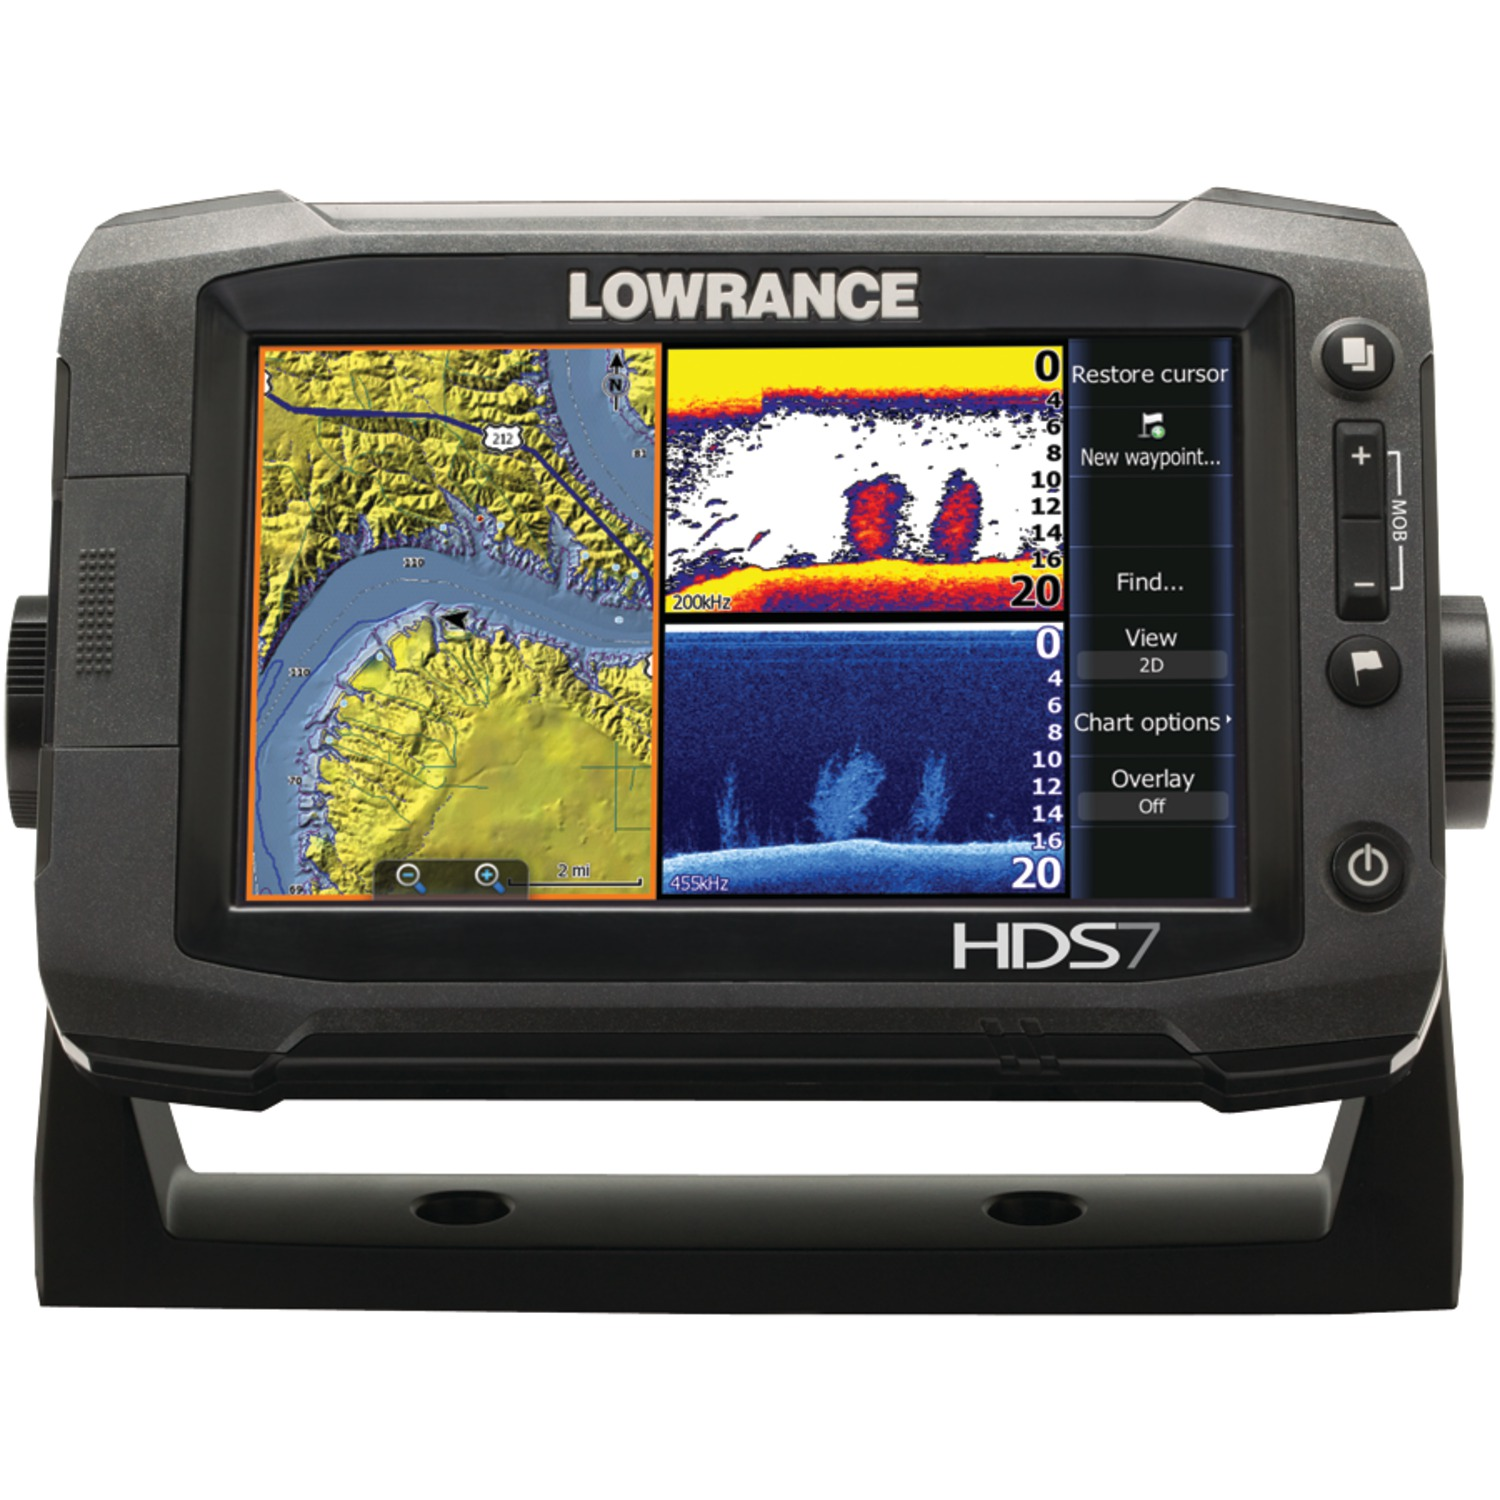 lowrance 000 10765 001 hds 7 gen2 touch fishfinder chartplotter with insight tm usa 83. Black Bedroom Furniture Sets. Home Design Ideas